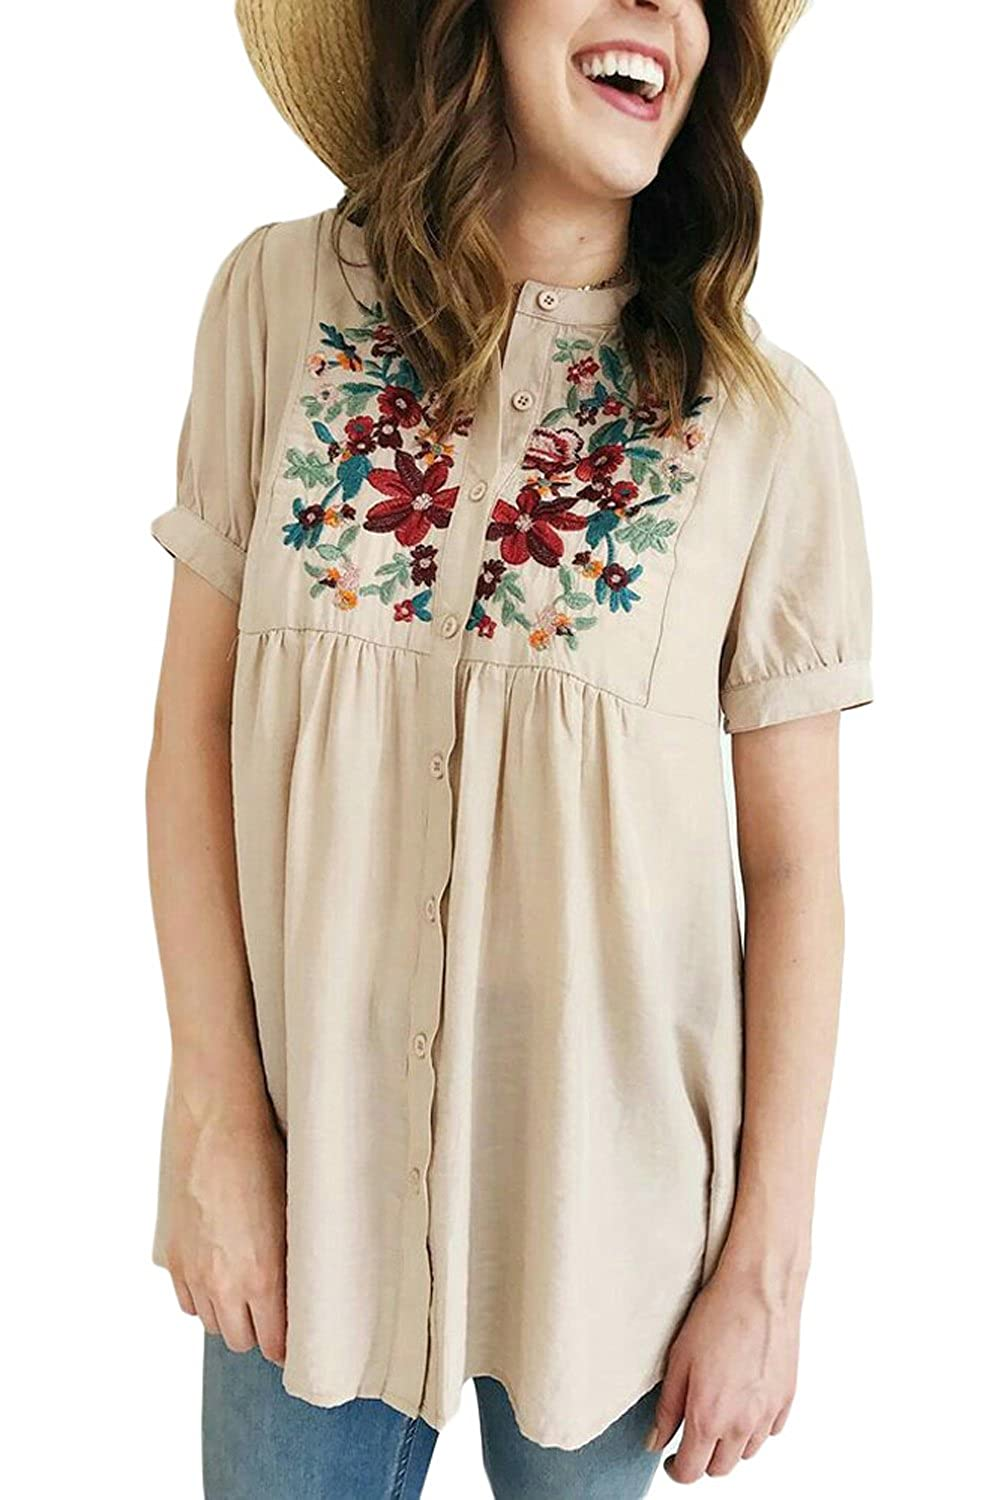 74ff1eb398 The floral embroidered design is charming and loved by ladies. Gathered  empire waist and cuffed sleeves, button up closure front